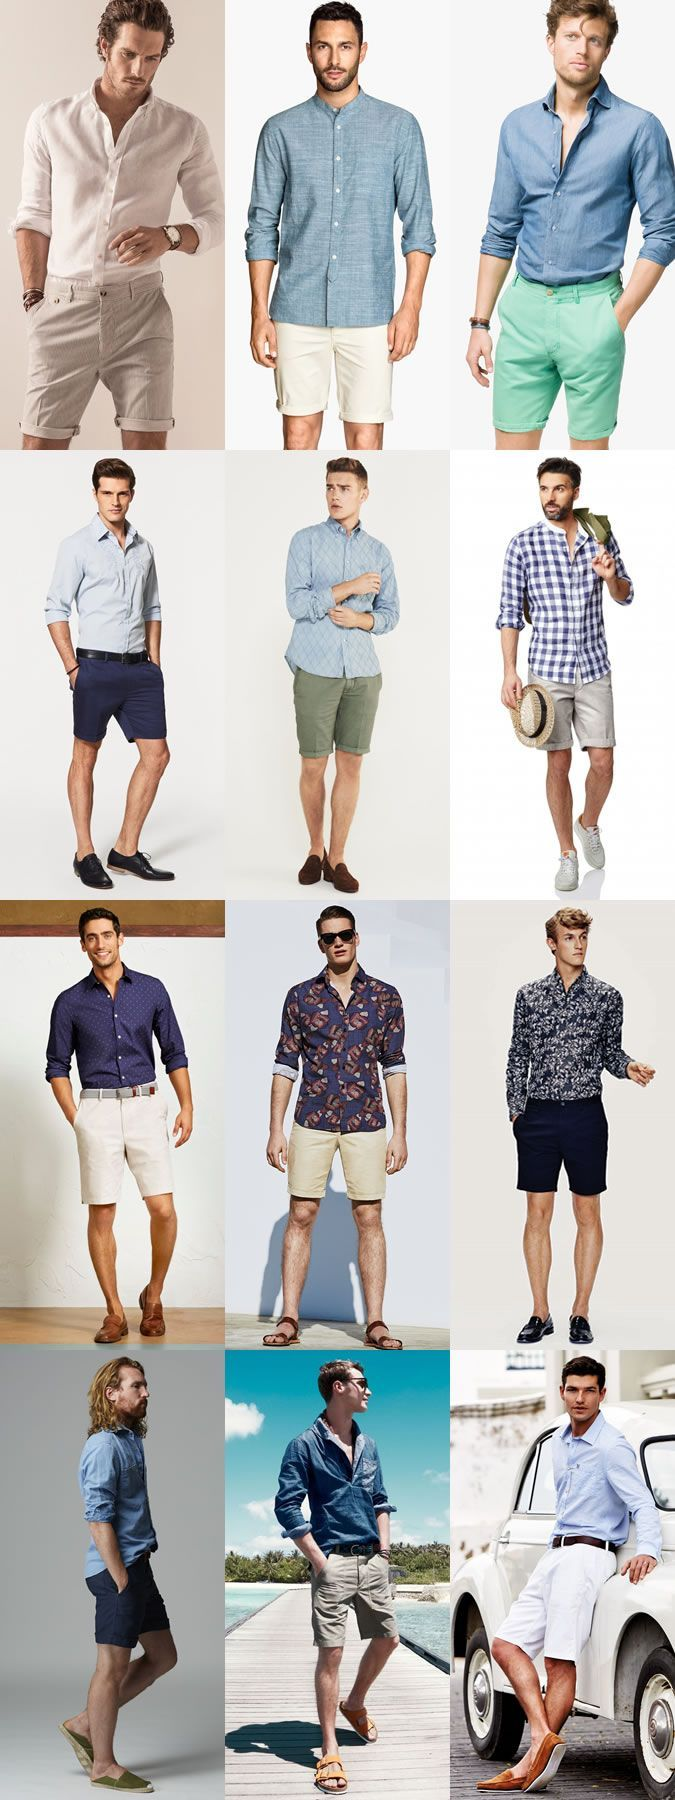 Men S Go To Smart Casual Summer Outfit Combinations Long Sleeved Shirt And Shorts Combination Ins Mens Summer Outfits Summer Outfits Men Casual Summer Outfits [ 1800 x 675 Pixel ]